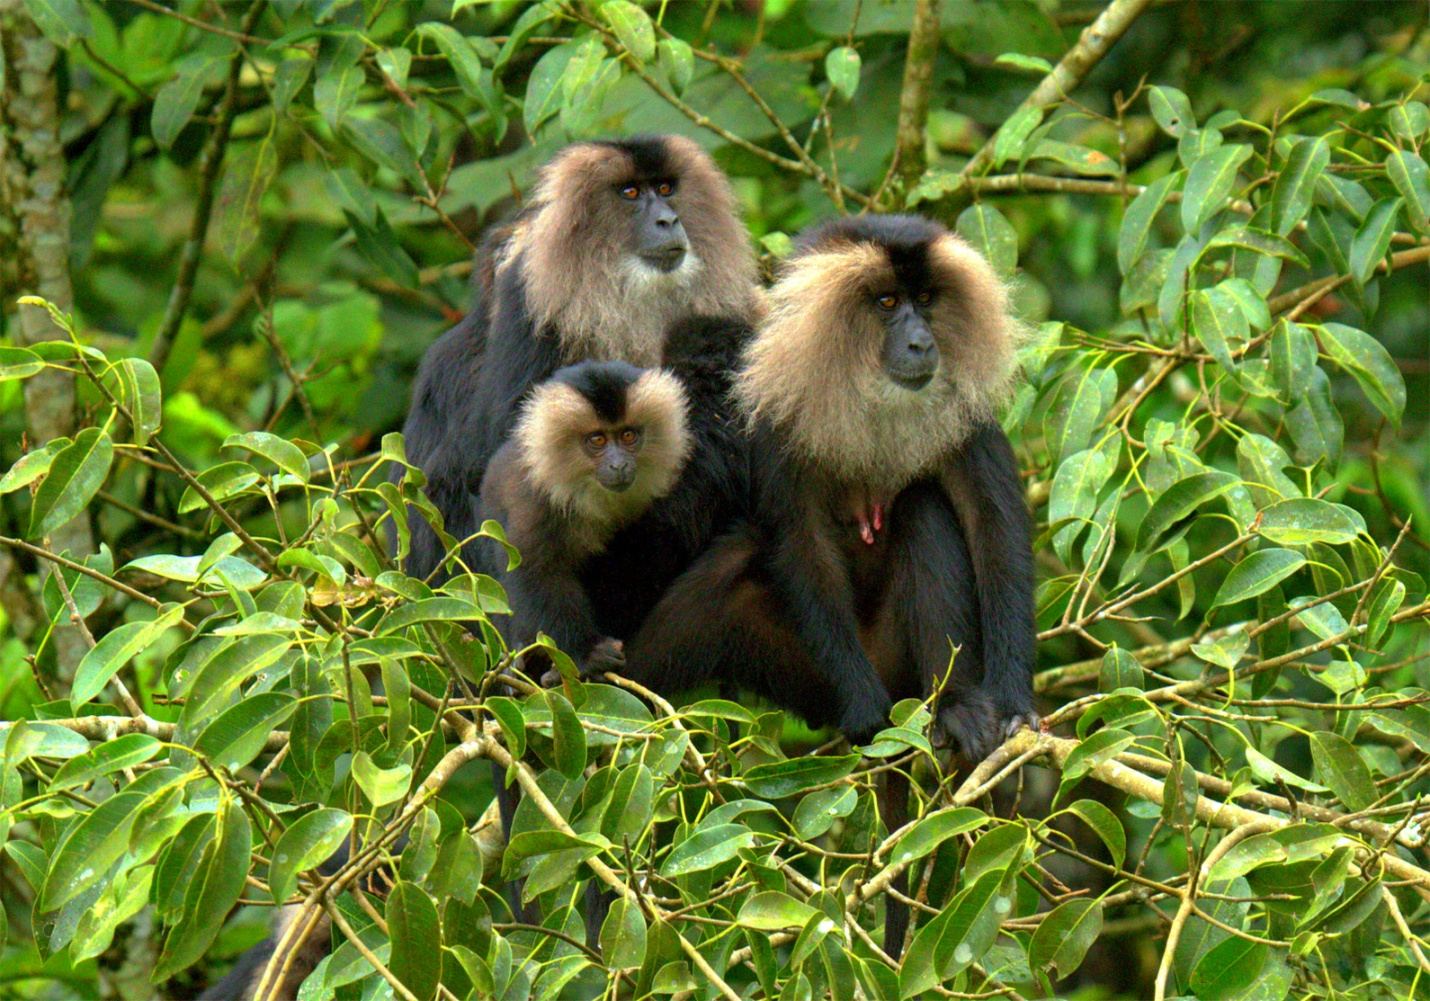 https://upload.wikimedia.org/wikipedia/commons/f/fb/Lion-tailed_macaque_by_N._A._Naseer.jpg